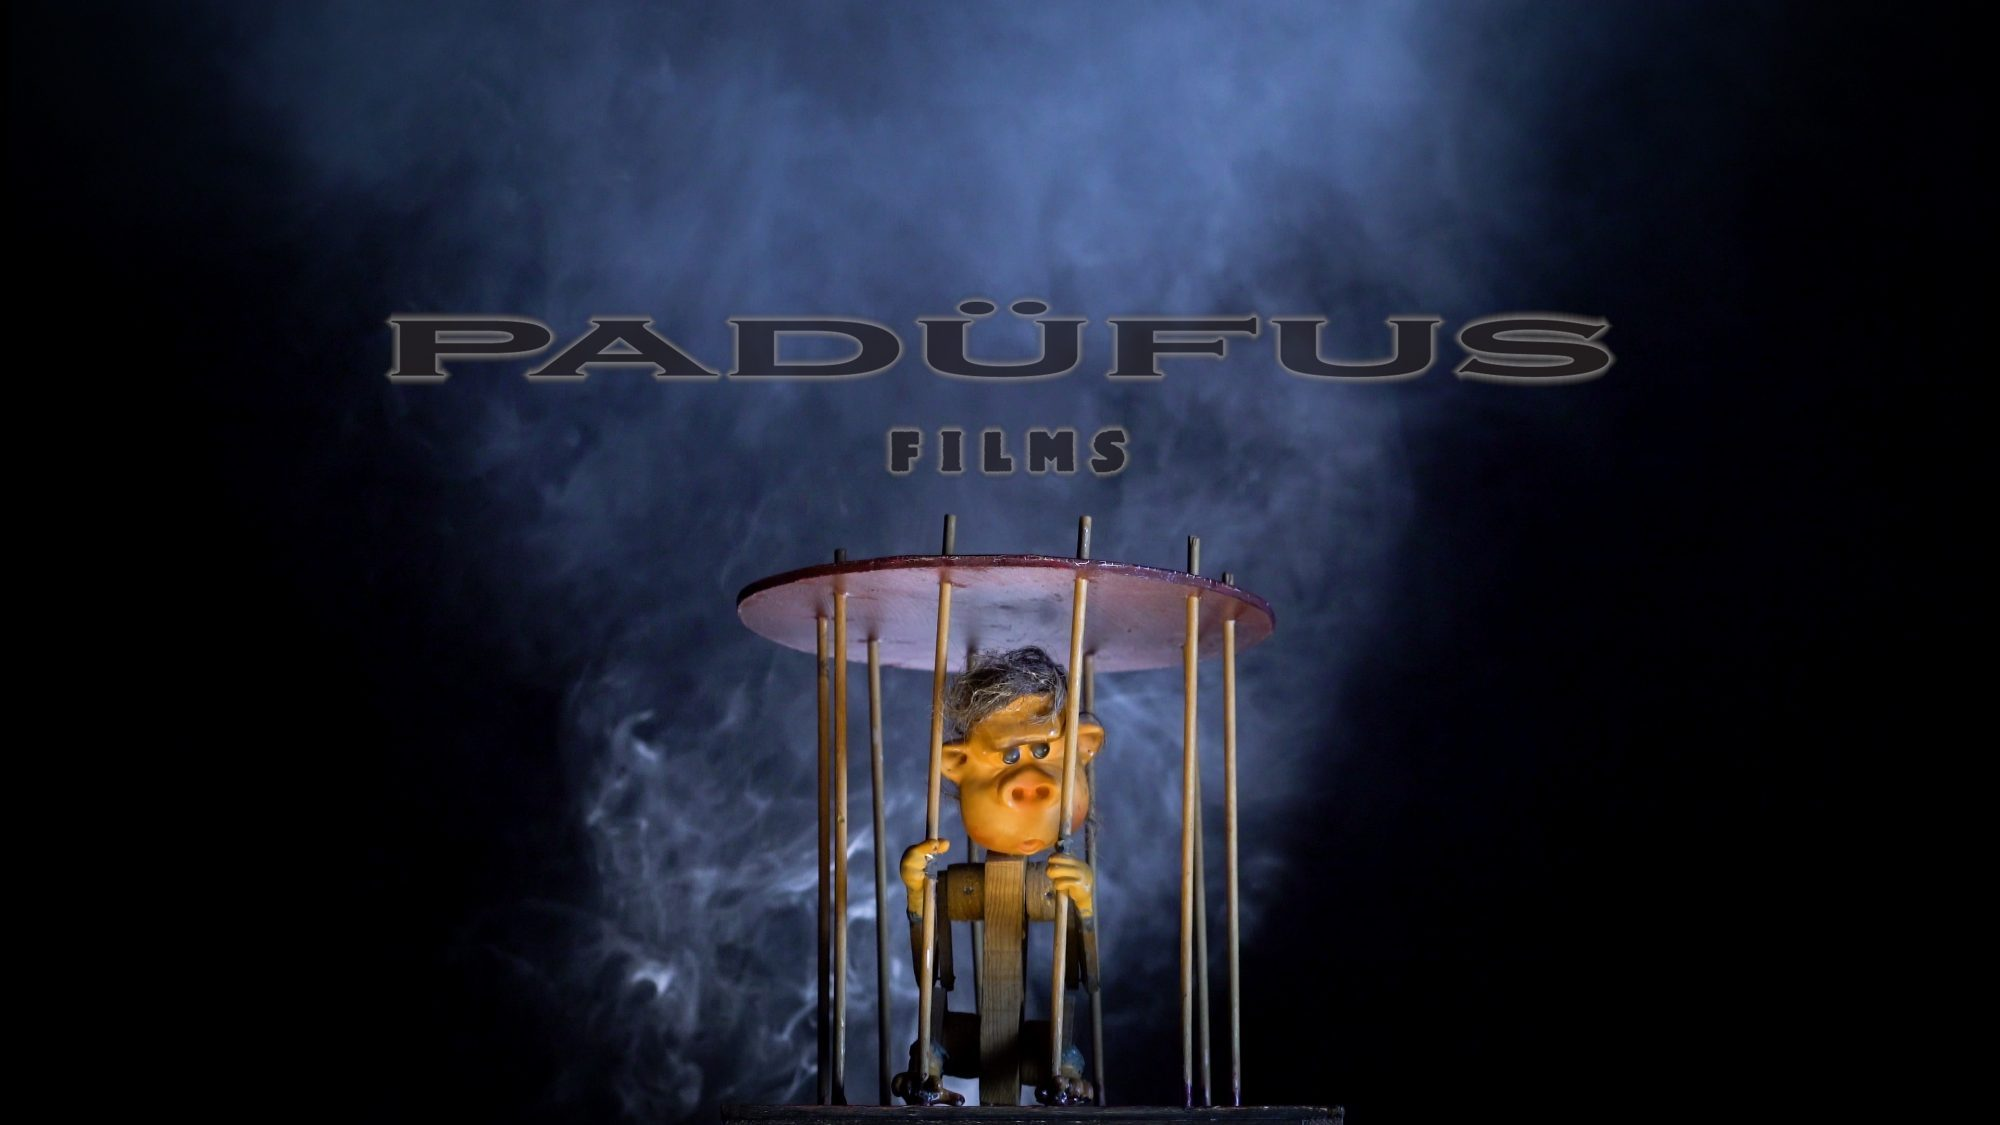 Padüfus Films strives to engender  feelings of curiosity, wonder and good humor by exploring the unusual in the familiar. We create comedies that entertain yet inspire and documentaries that educate through reflection and delight.